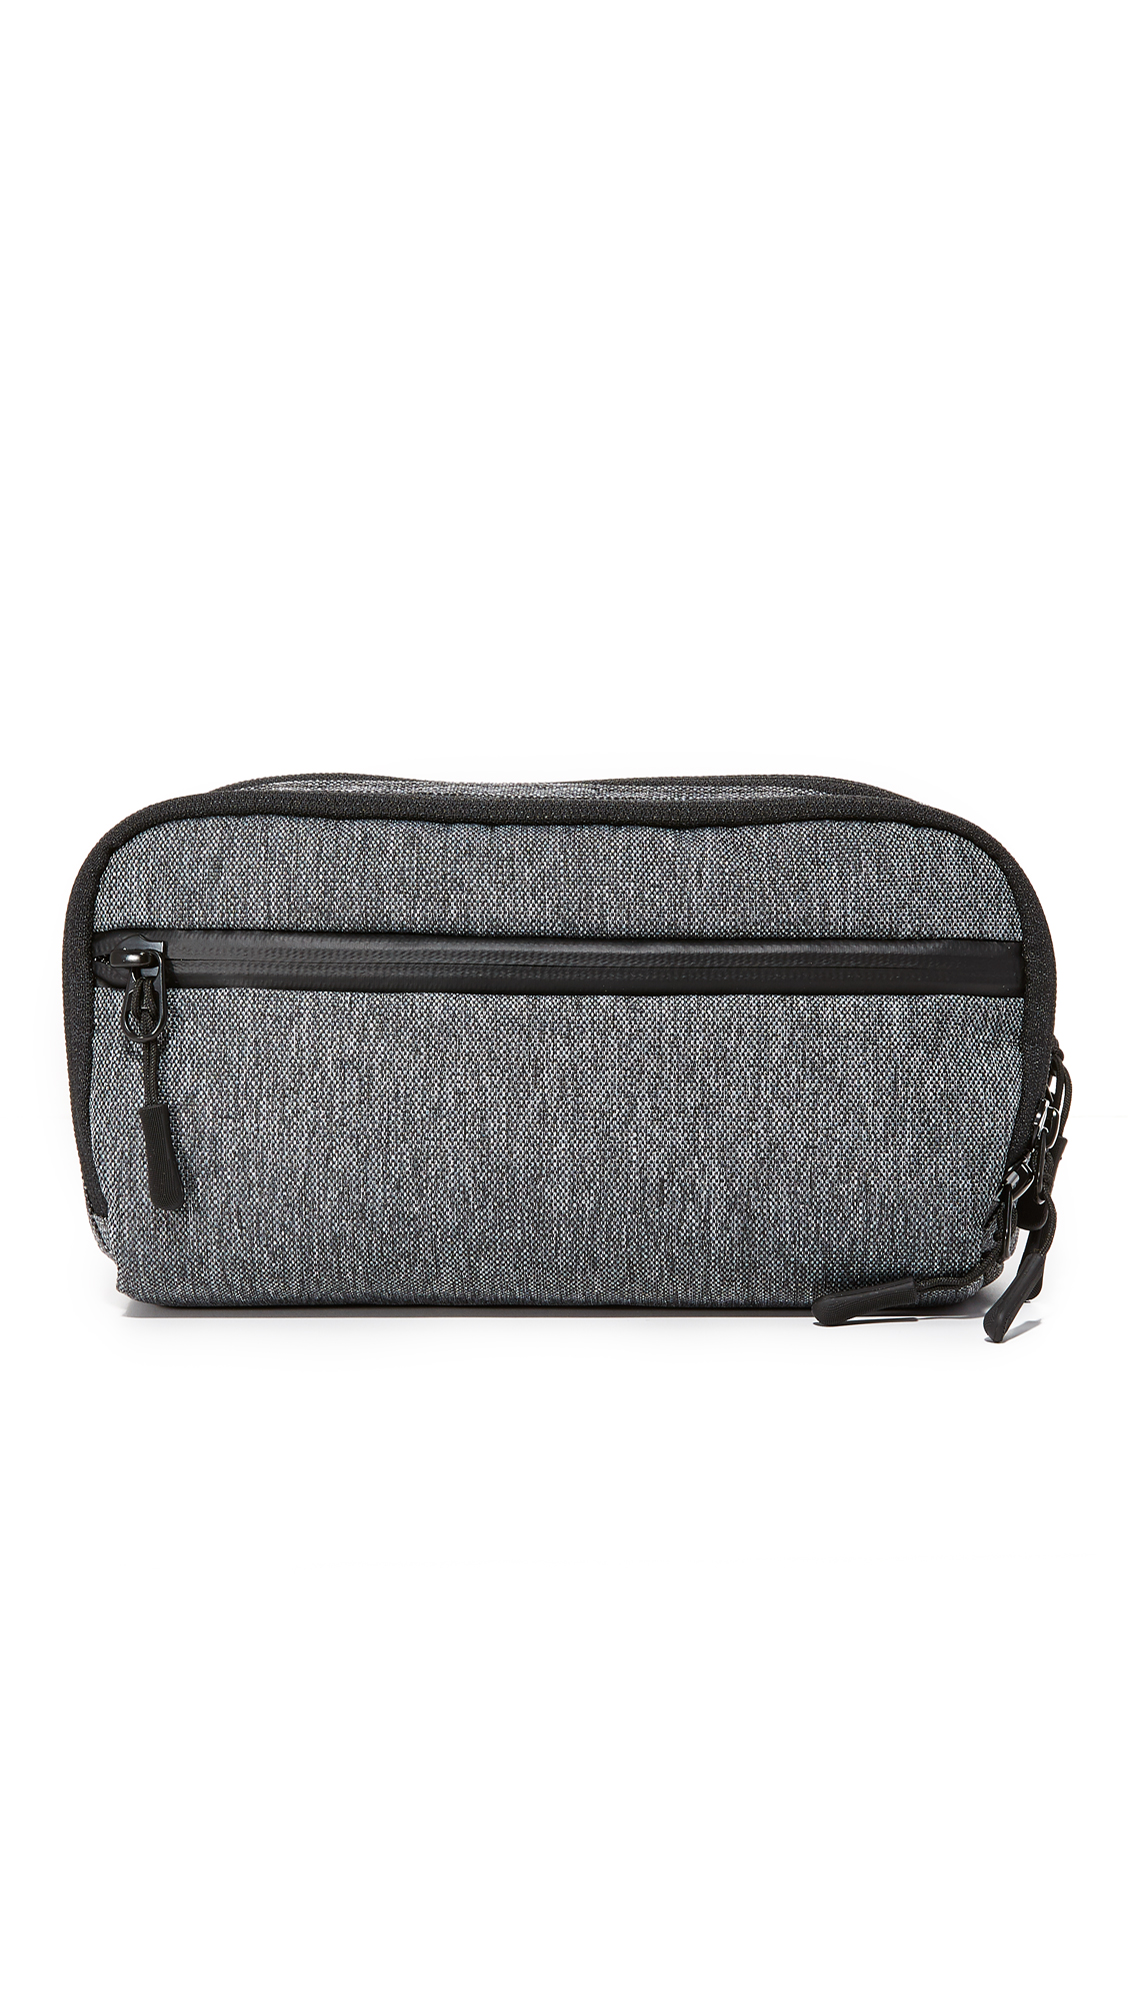 AER Dopp Kit in Gray